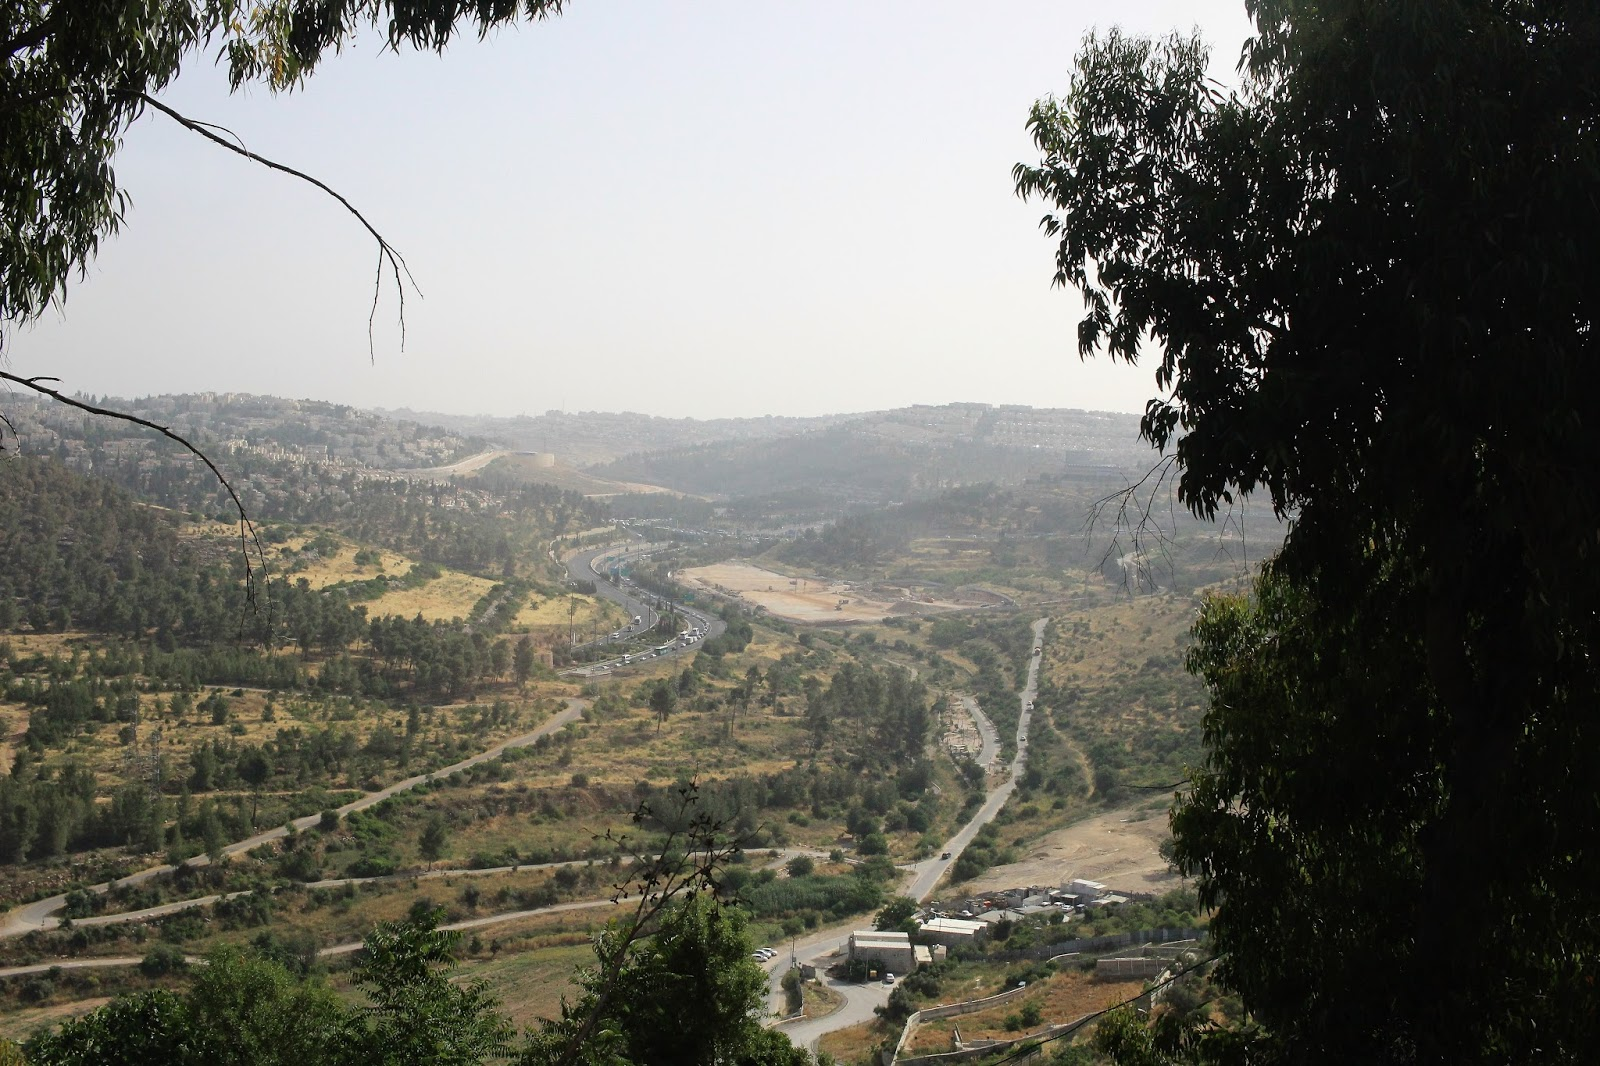 Beth Shemesh Judah: The View From My Chair: Israel 2016, Day 11